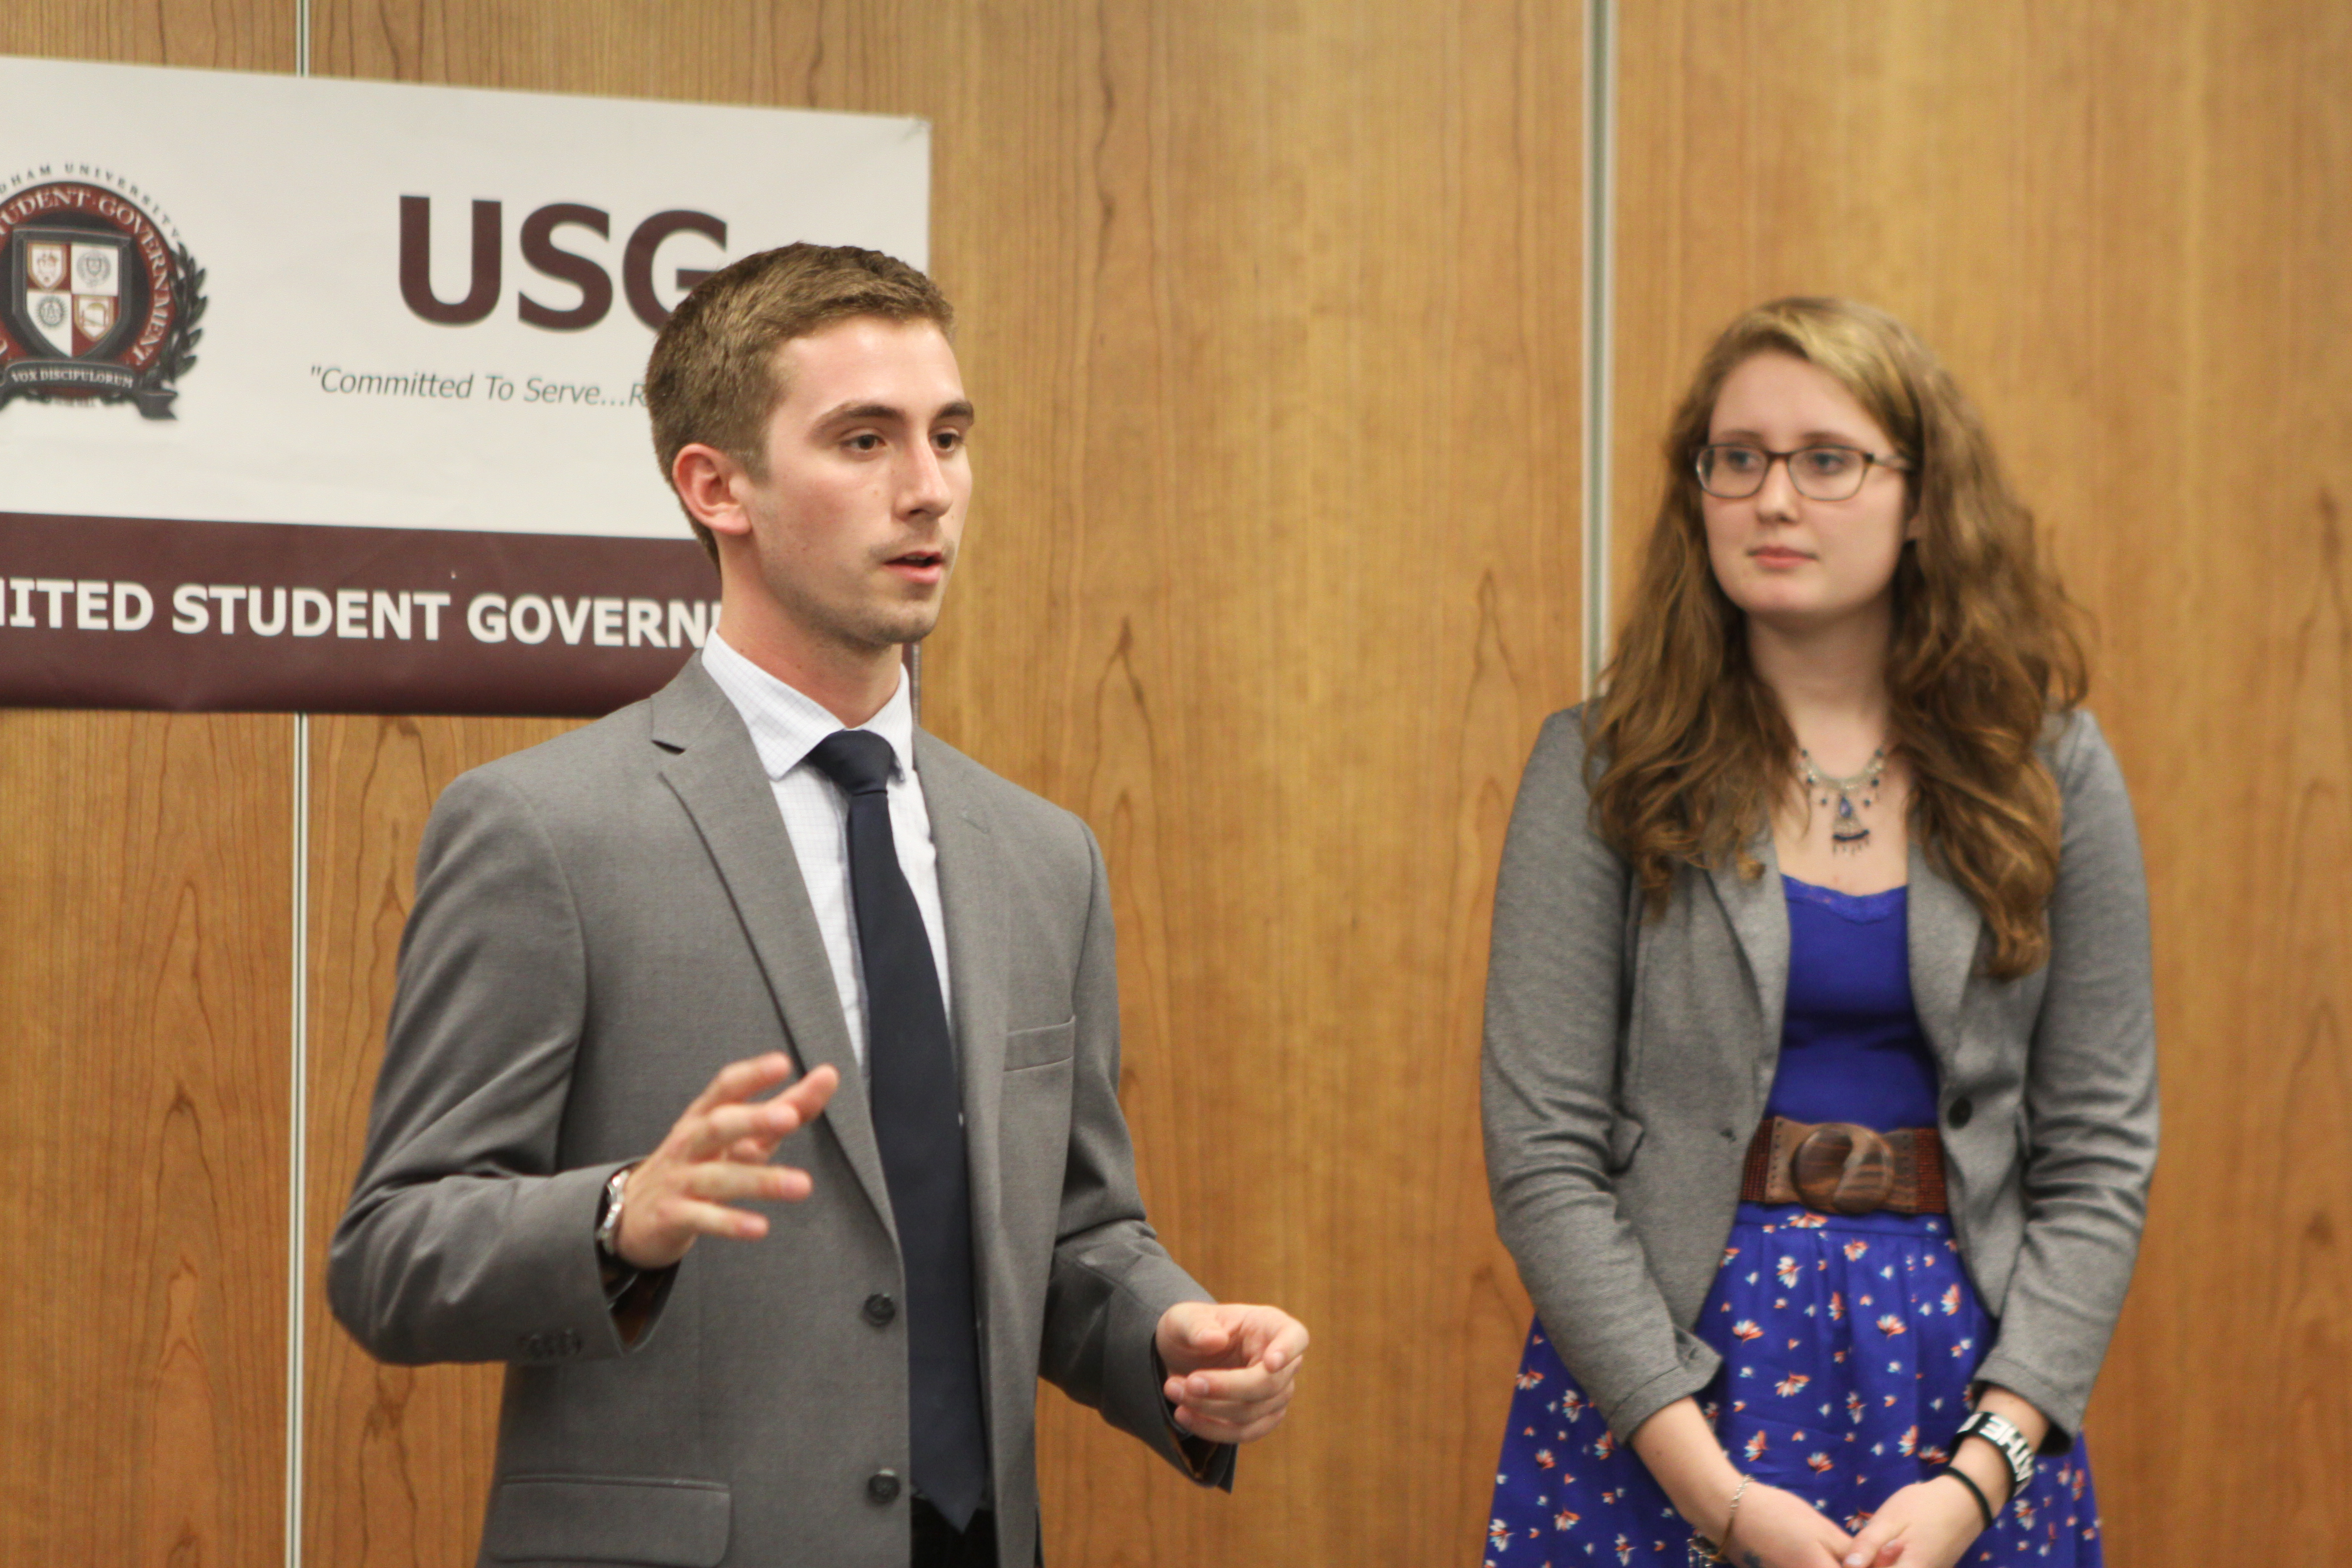 Brendan Francolini and Aileen Reynolds, top USG leaders at Rose Hill. (Katie Meyer/The Ram)